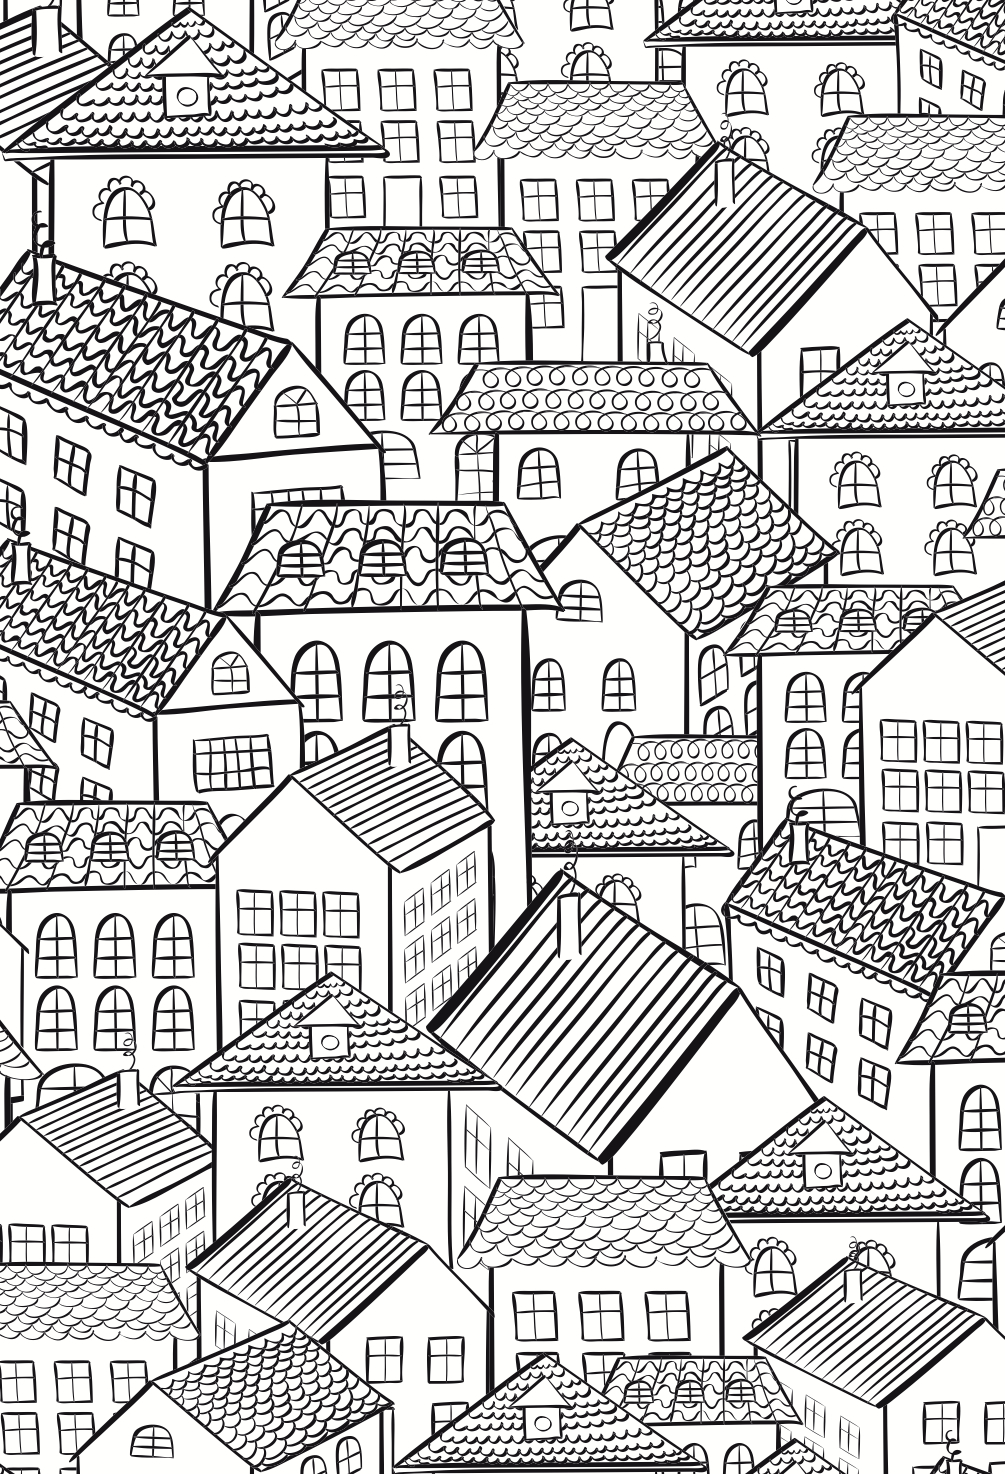 houses colouring page